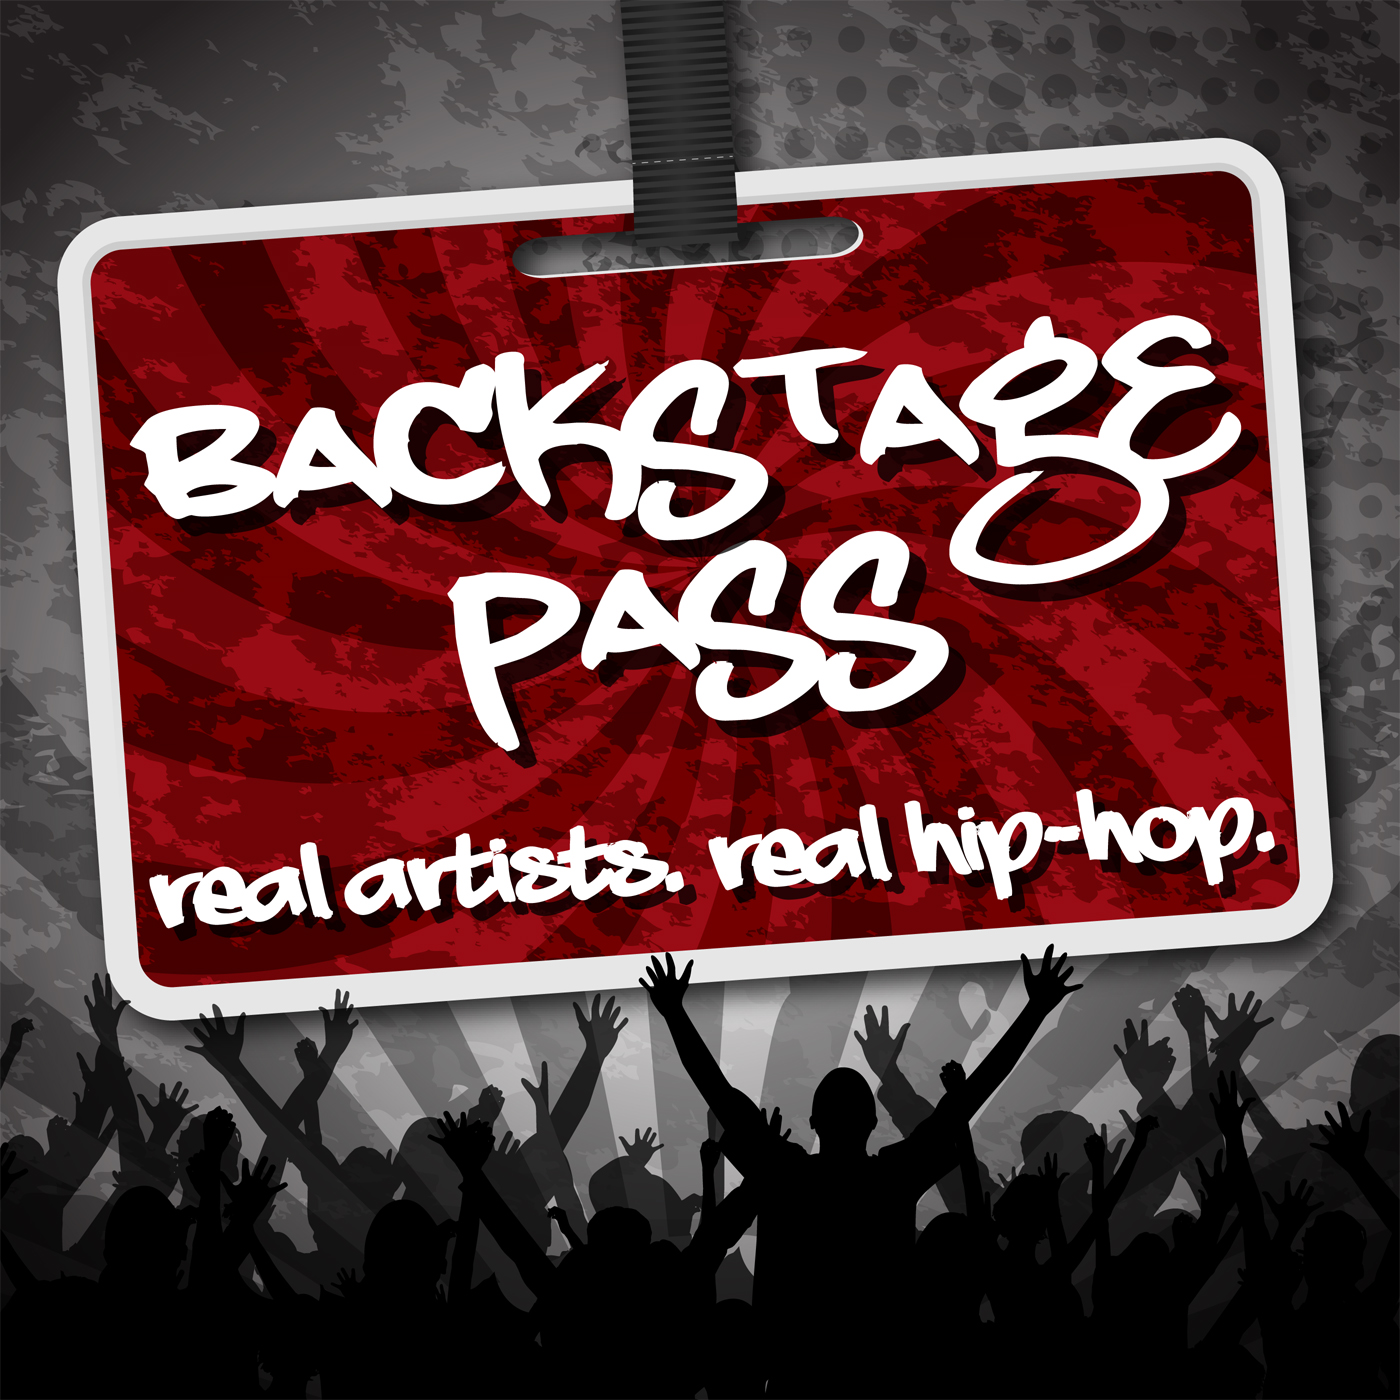 Backstage Pass: Positive Hip Hop / Rap / R&B | Artist Interviews | Authentic Behind the Scenes Look